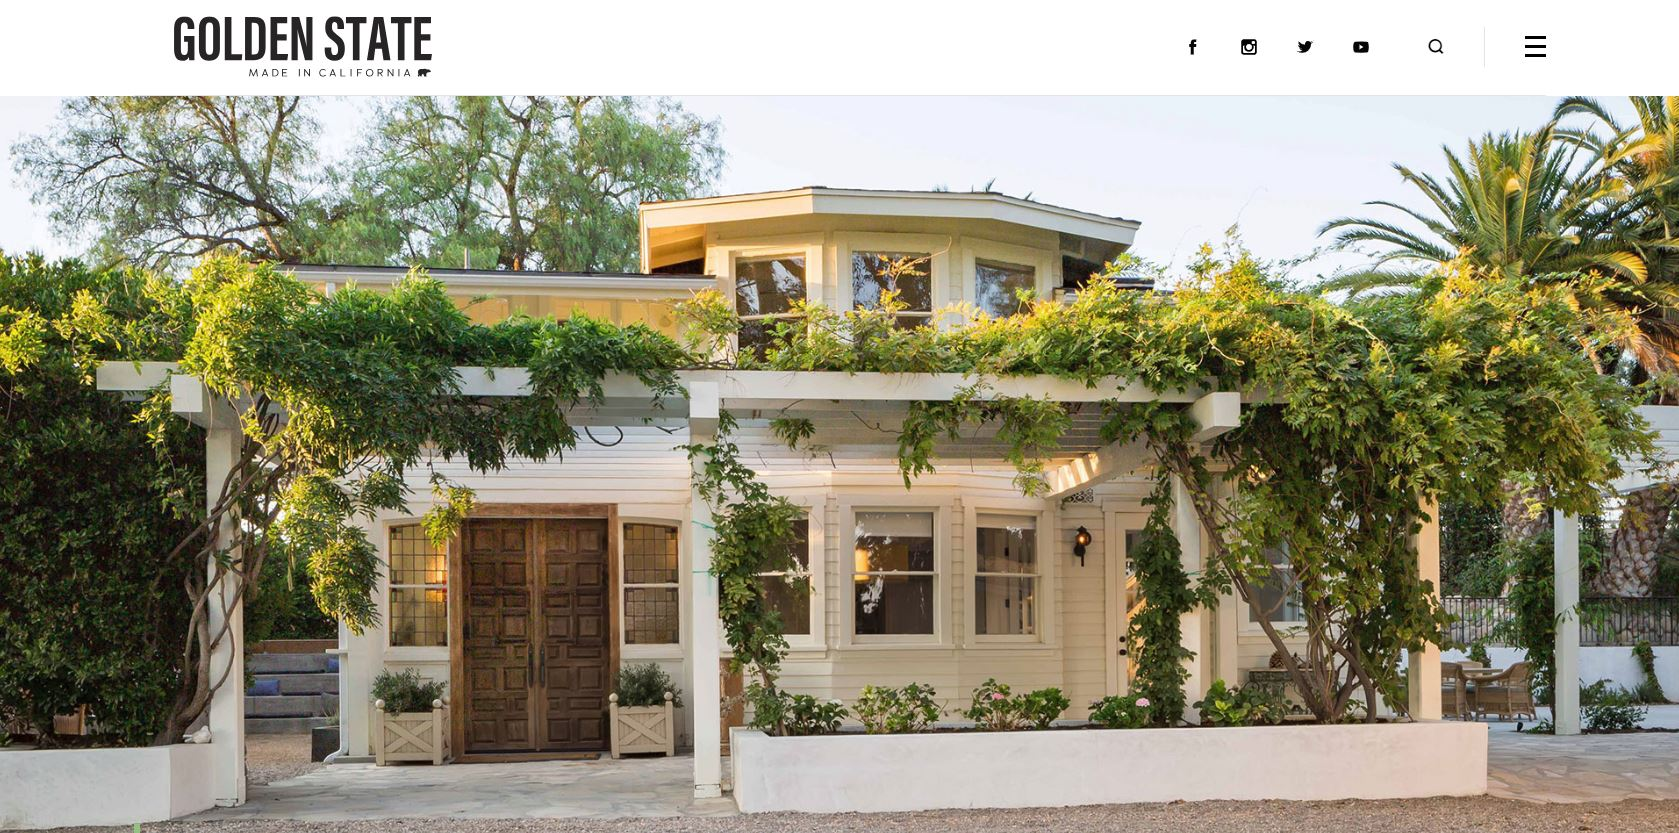 GOLDEN STATE - HOME + SPACE - A RANCH RESTORATION IN LOS OLIVOS EXUDES RUSTIC CALIFORNIA CHARM